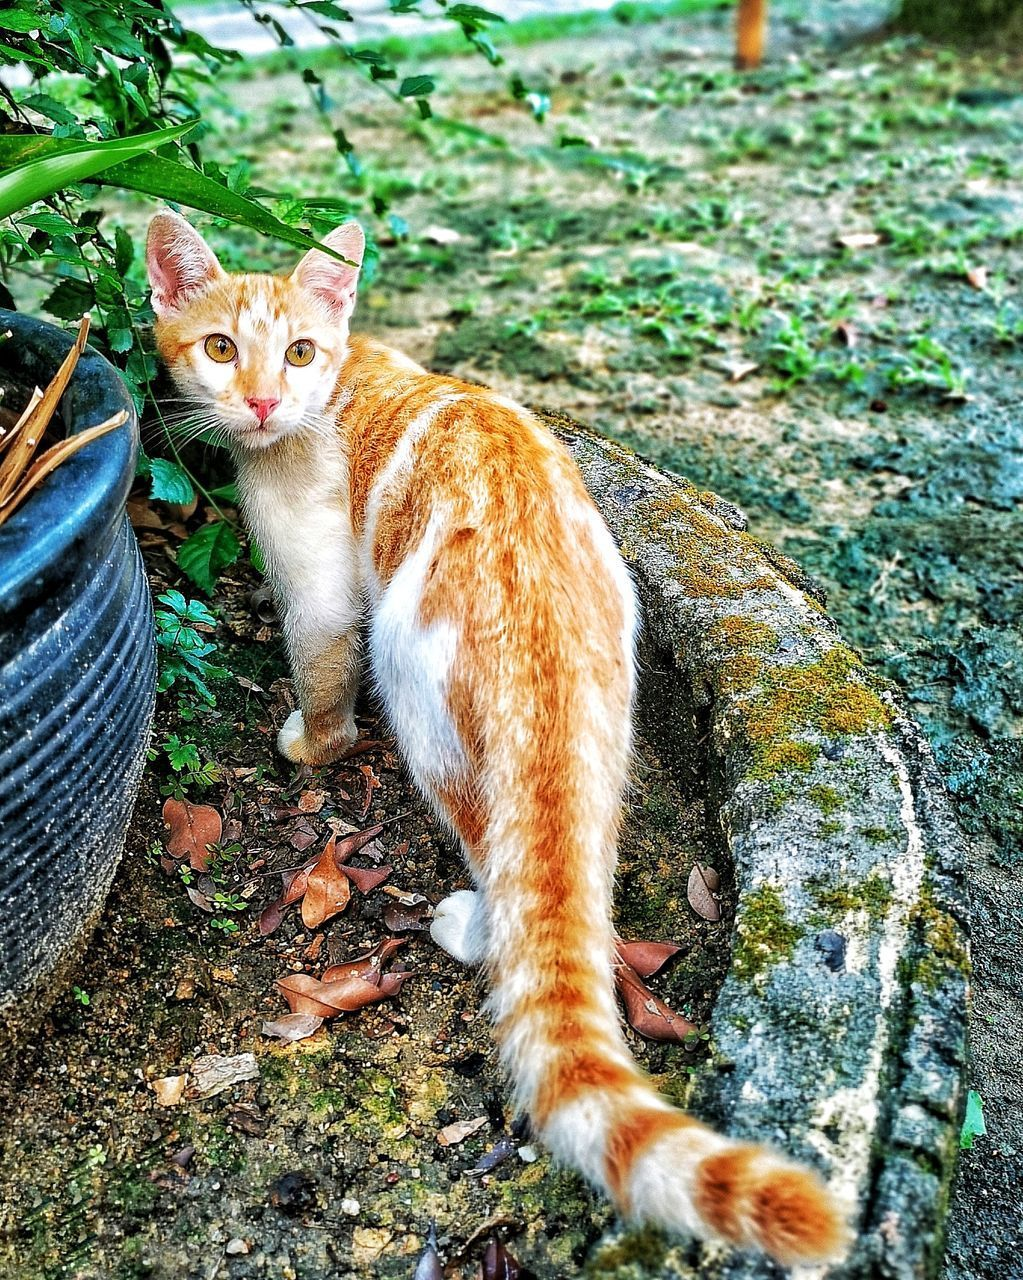 animal themes, mammal, domestic, animal, pets, domestic animals, domestic cat, cat, one animal, feline, vertebrate, looking at camera, portrait, no people, plant, land, day, nature, field, sitting, ginger cat, outdoors, whisker